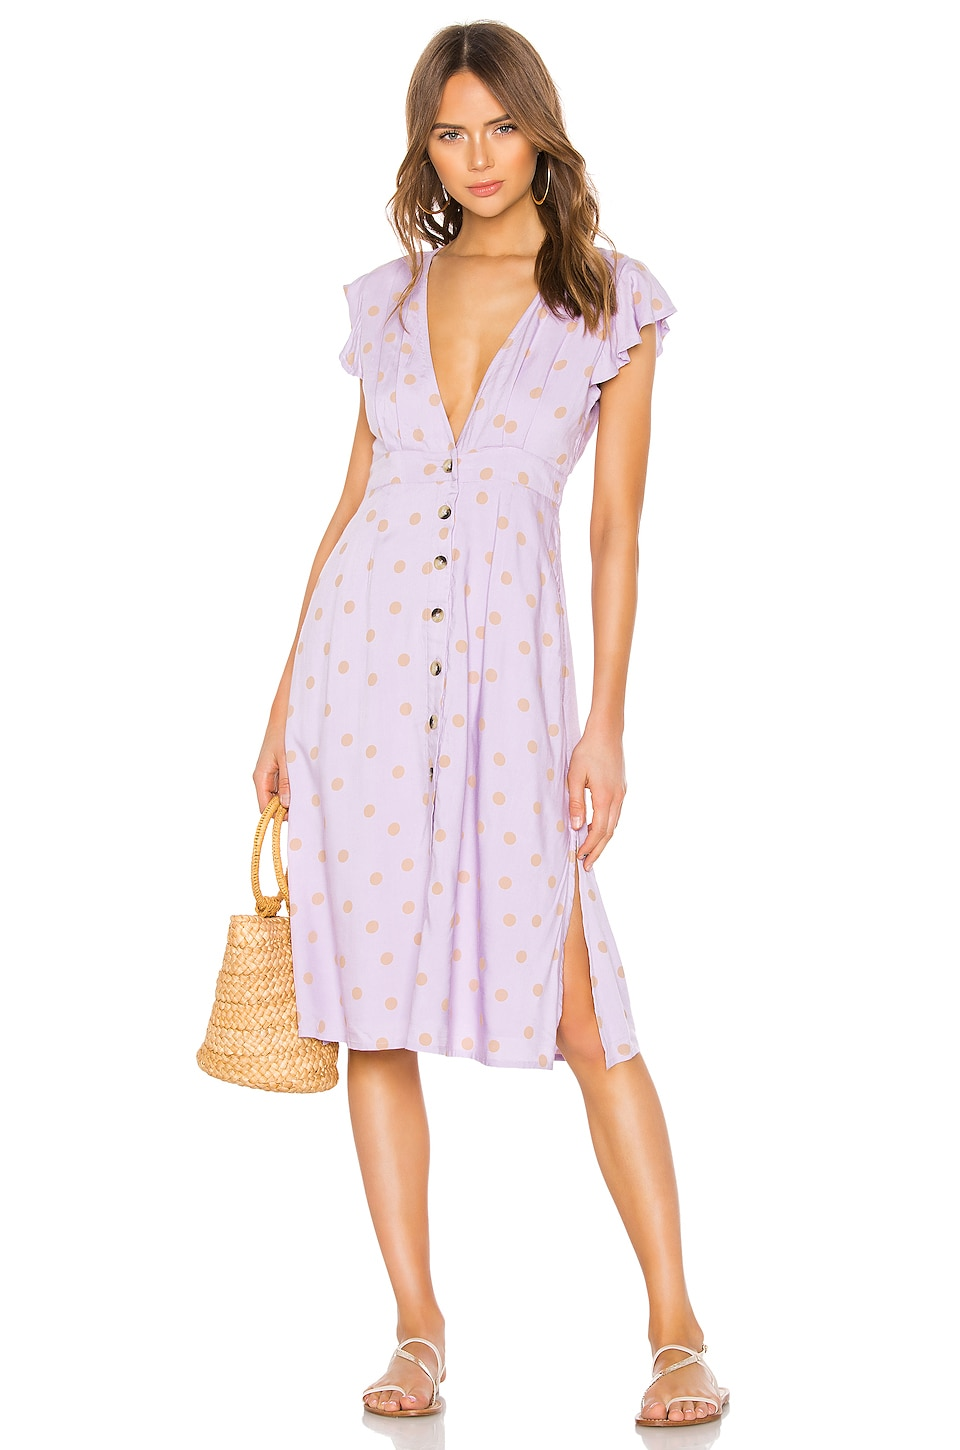 X REVOLVE Jordan Dress             L*SPACE                                                                                                                                         Sale price:                                                                       CA$ 88.47                                                                  Previous price:                                                                       CA$ 195.19 12